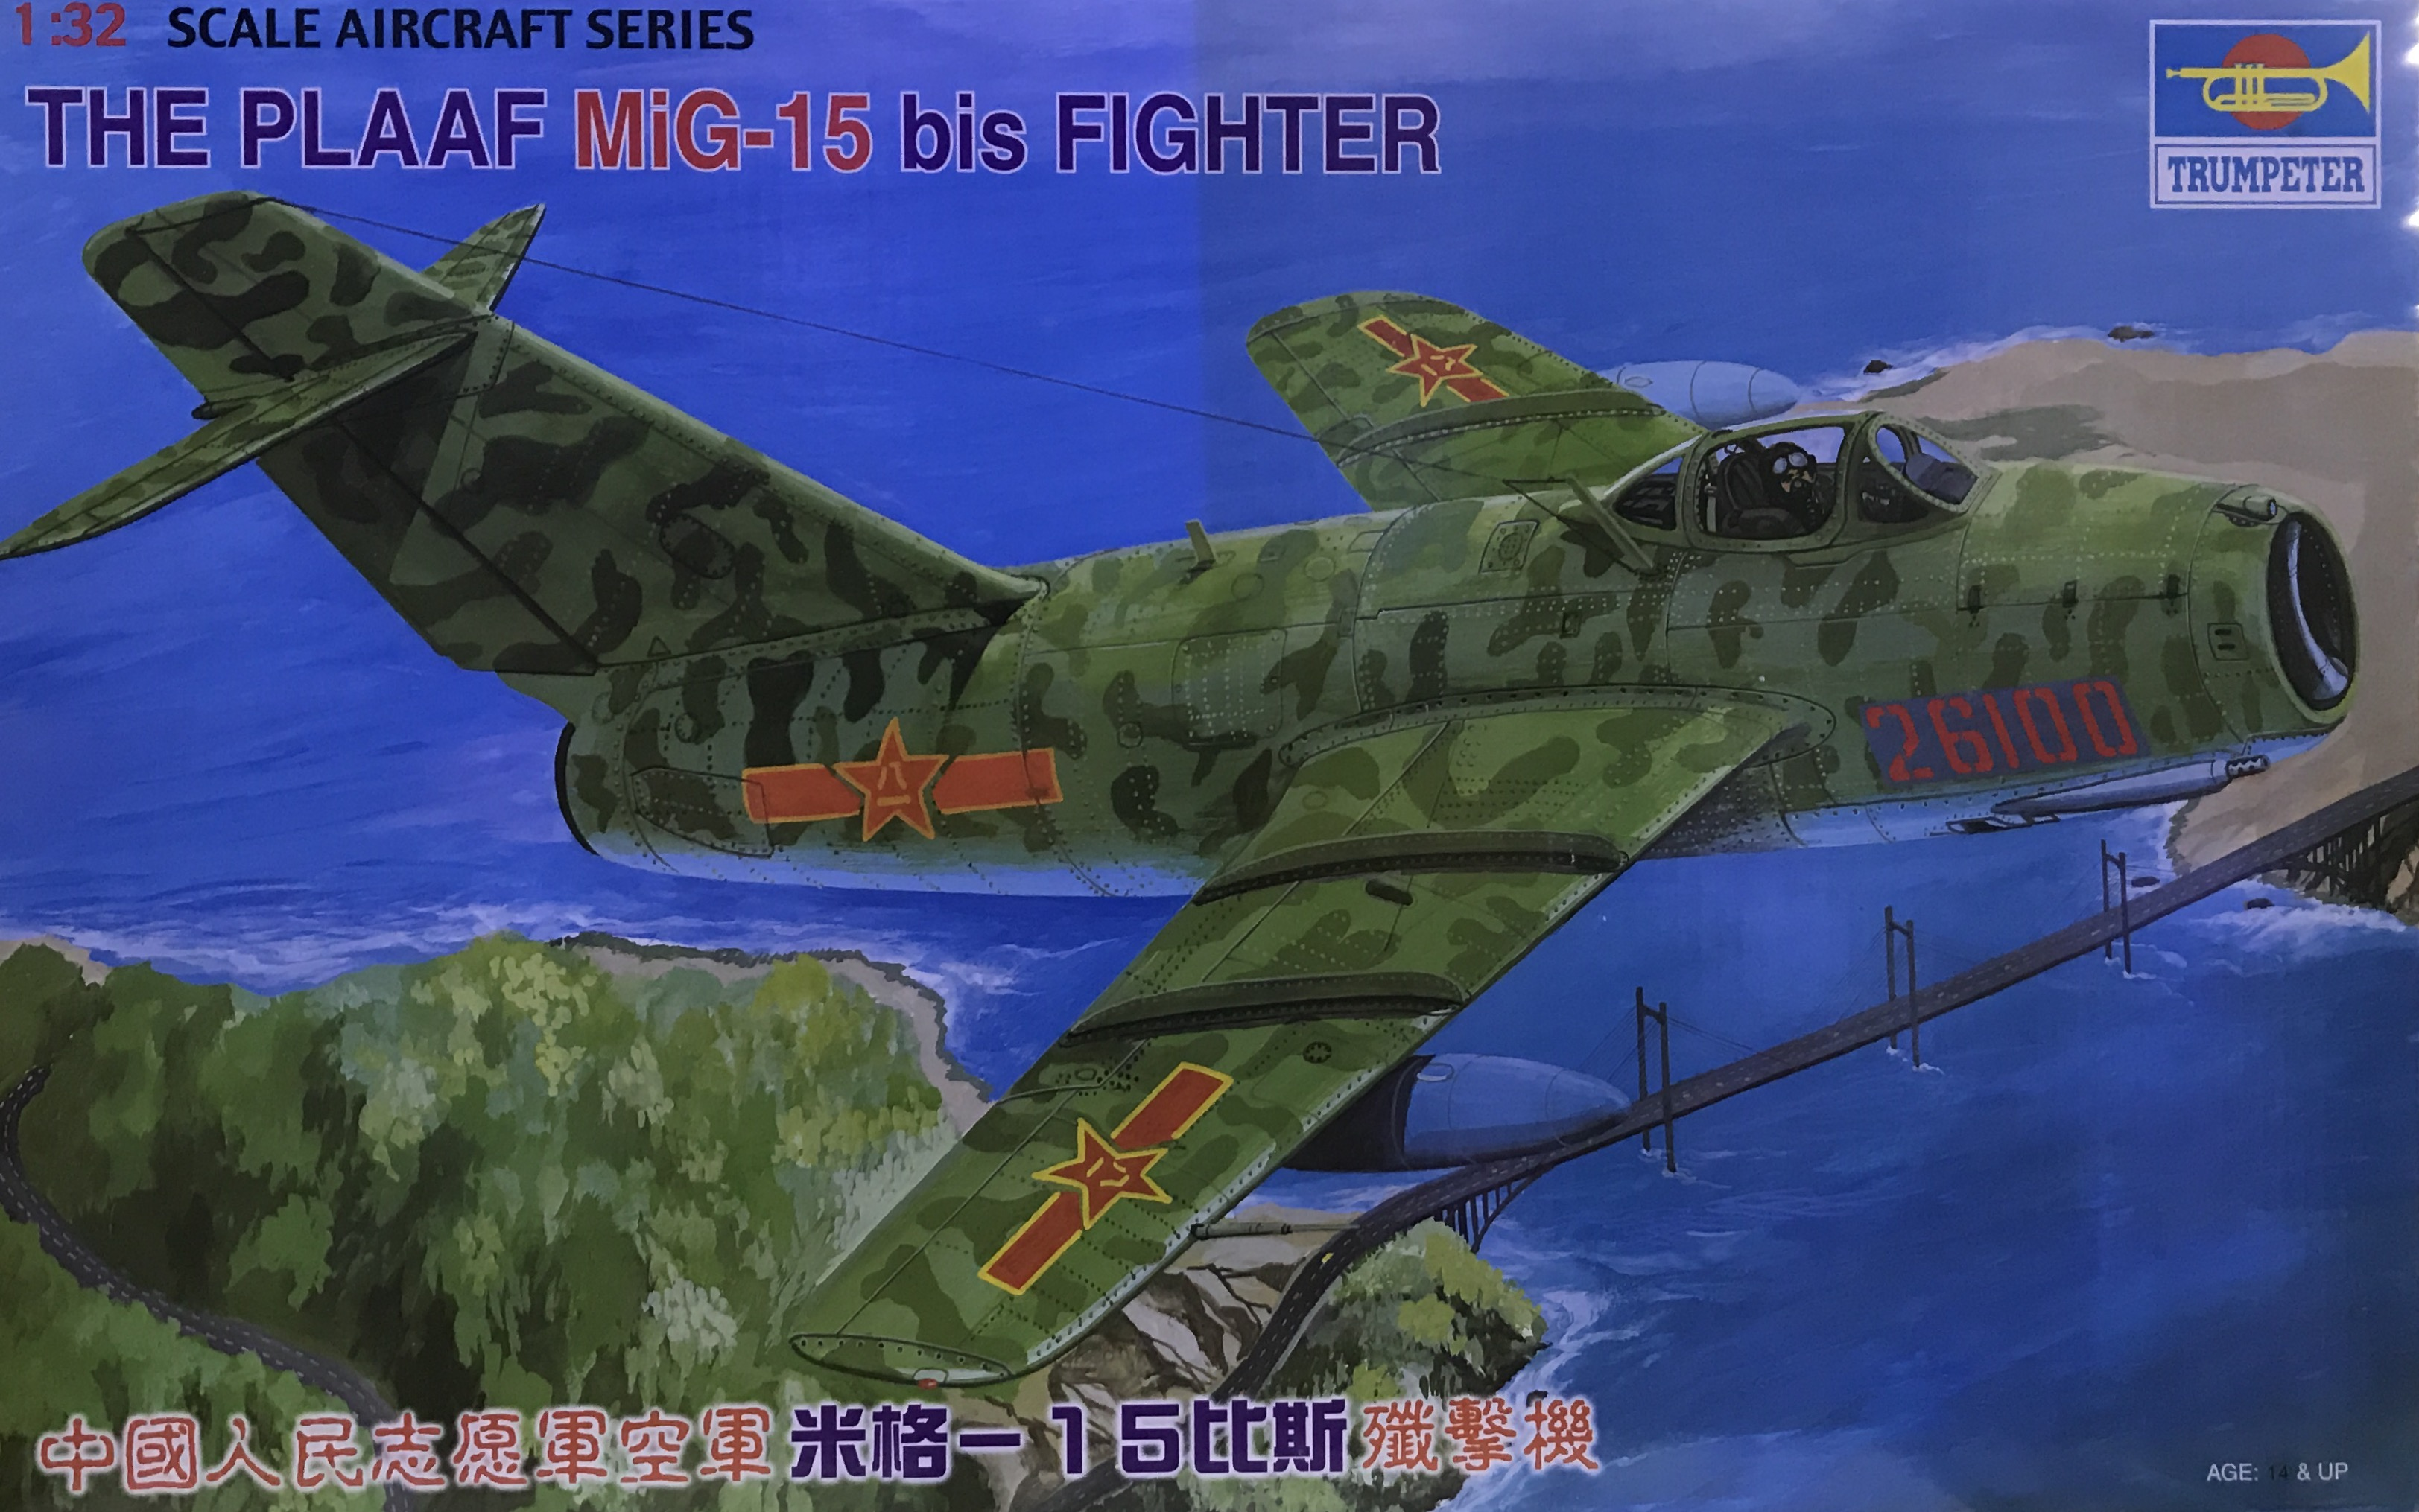 1/32 The PLA Air Force Mig-15 bis Fighter [Trumpeter]